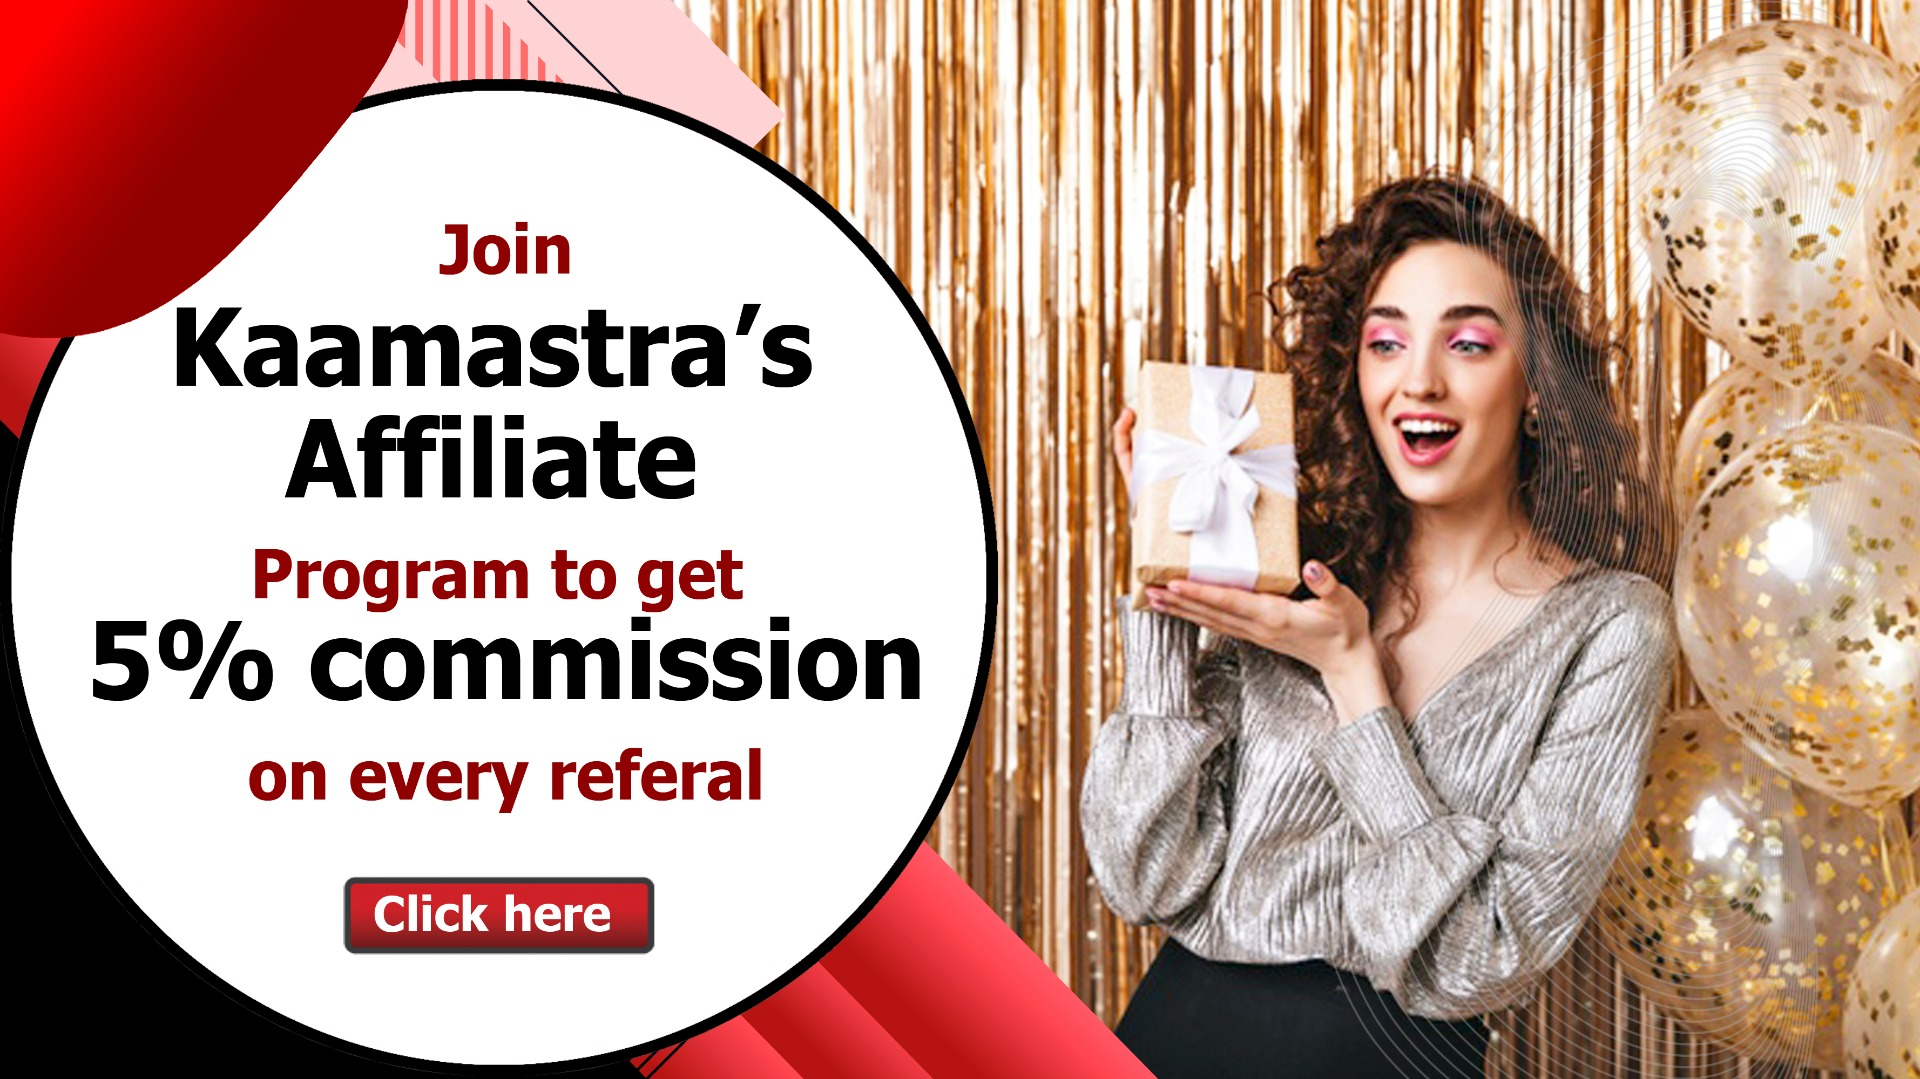 Kaamastra's Affiliate Marketing